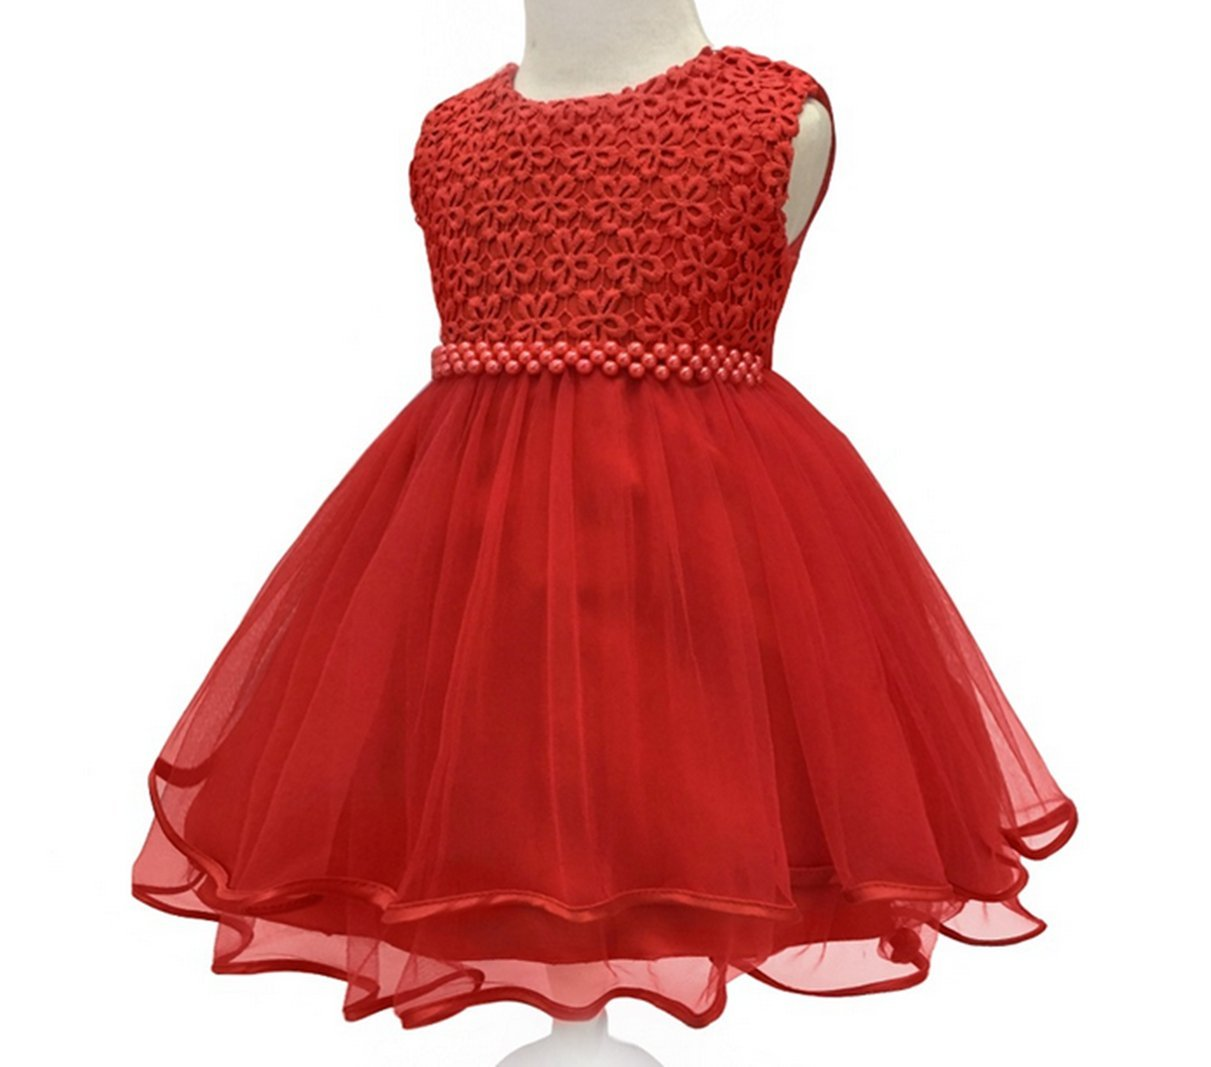 HX Infant and Toddler Princess Pearl Tutu Special Occasion Dresses for Baby Girl's Wedding Party (12M/Fit 10-13 Month, Red)